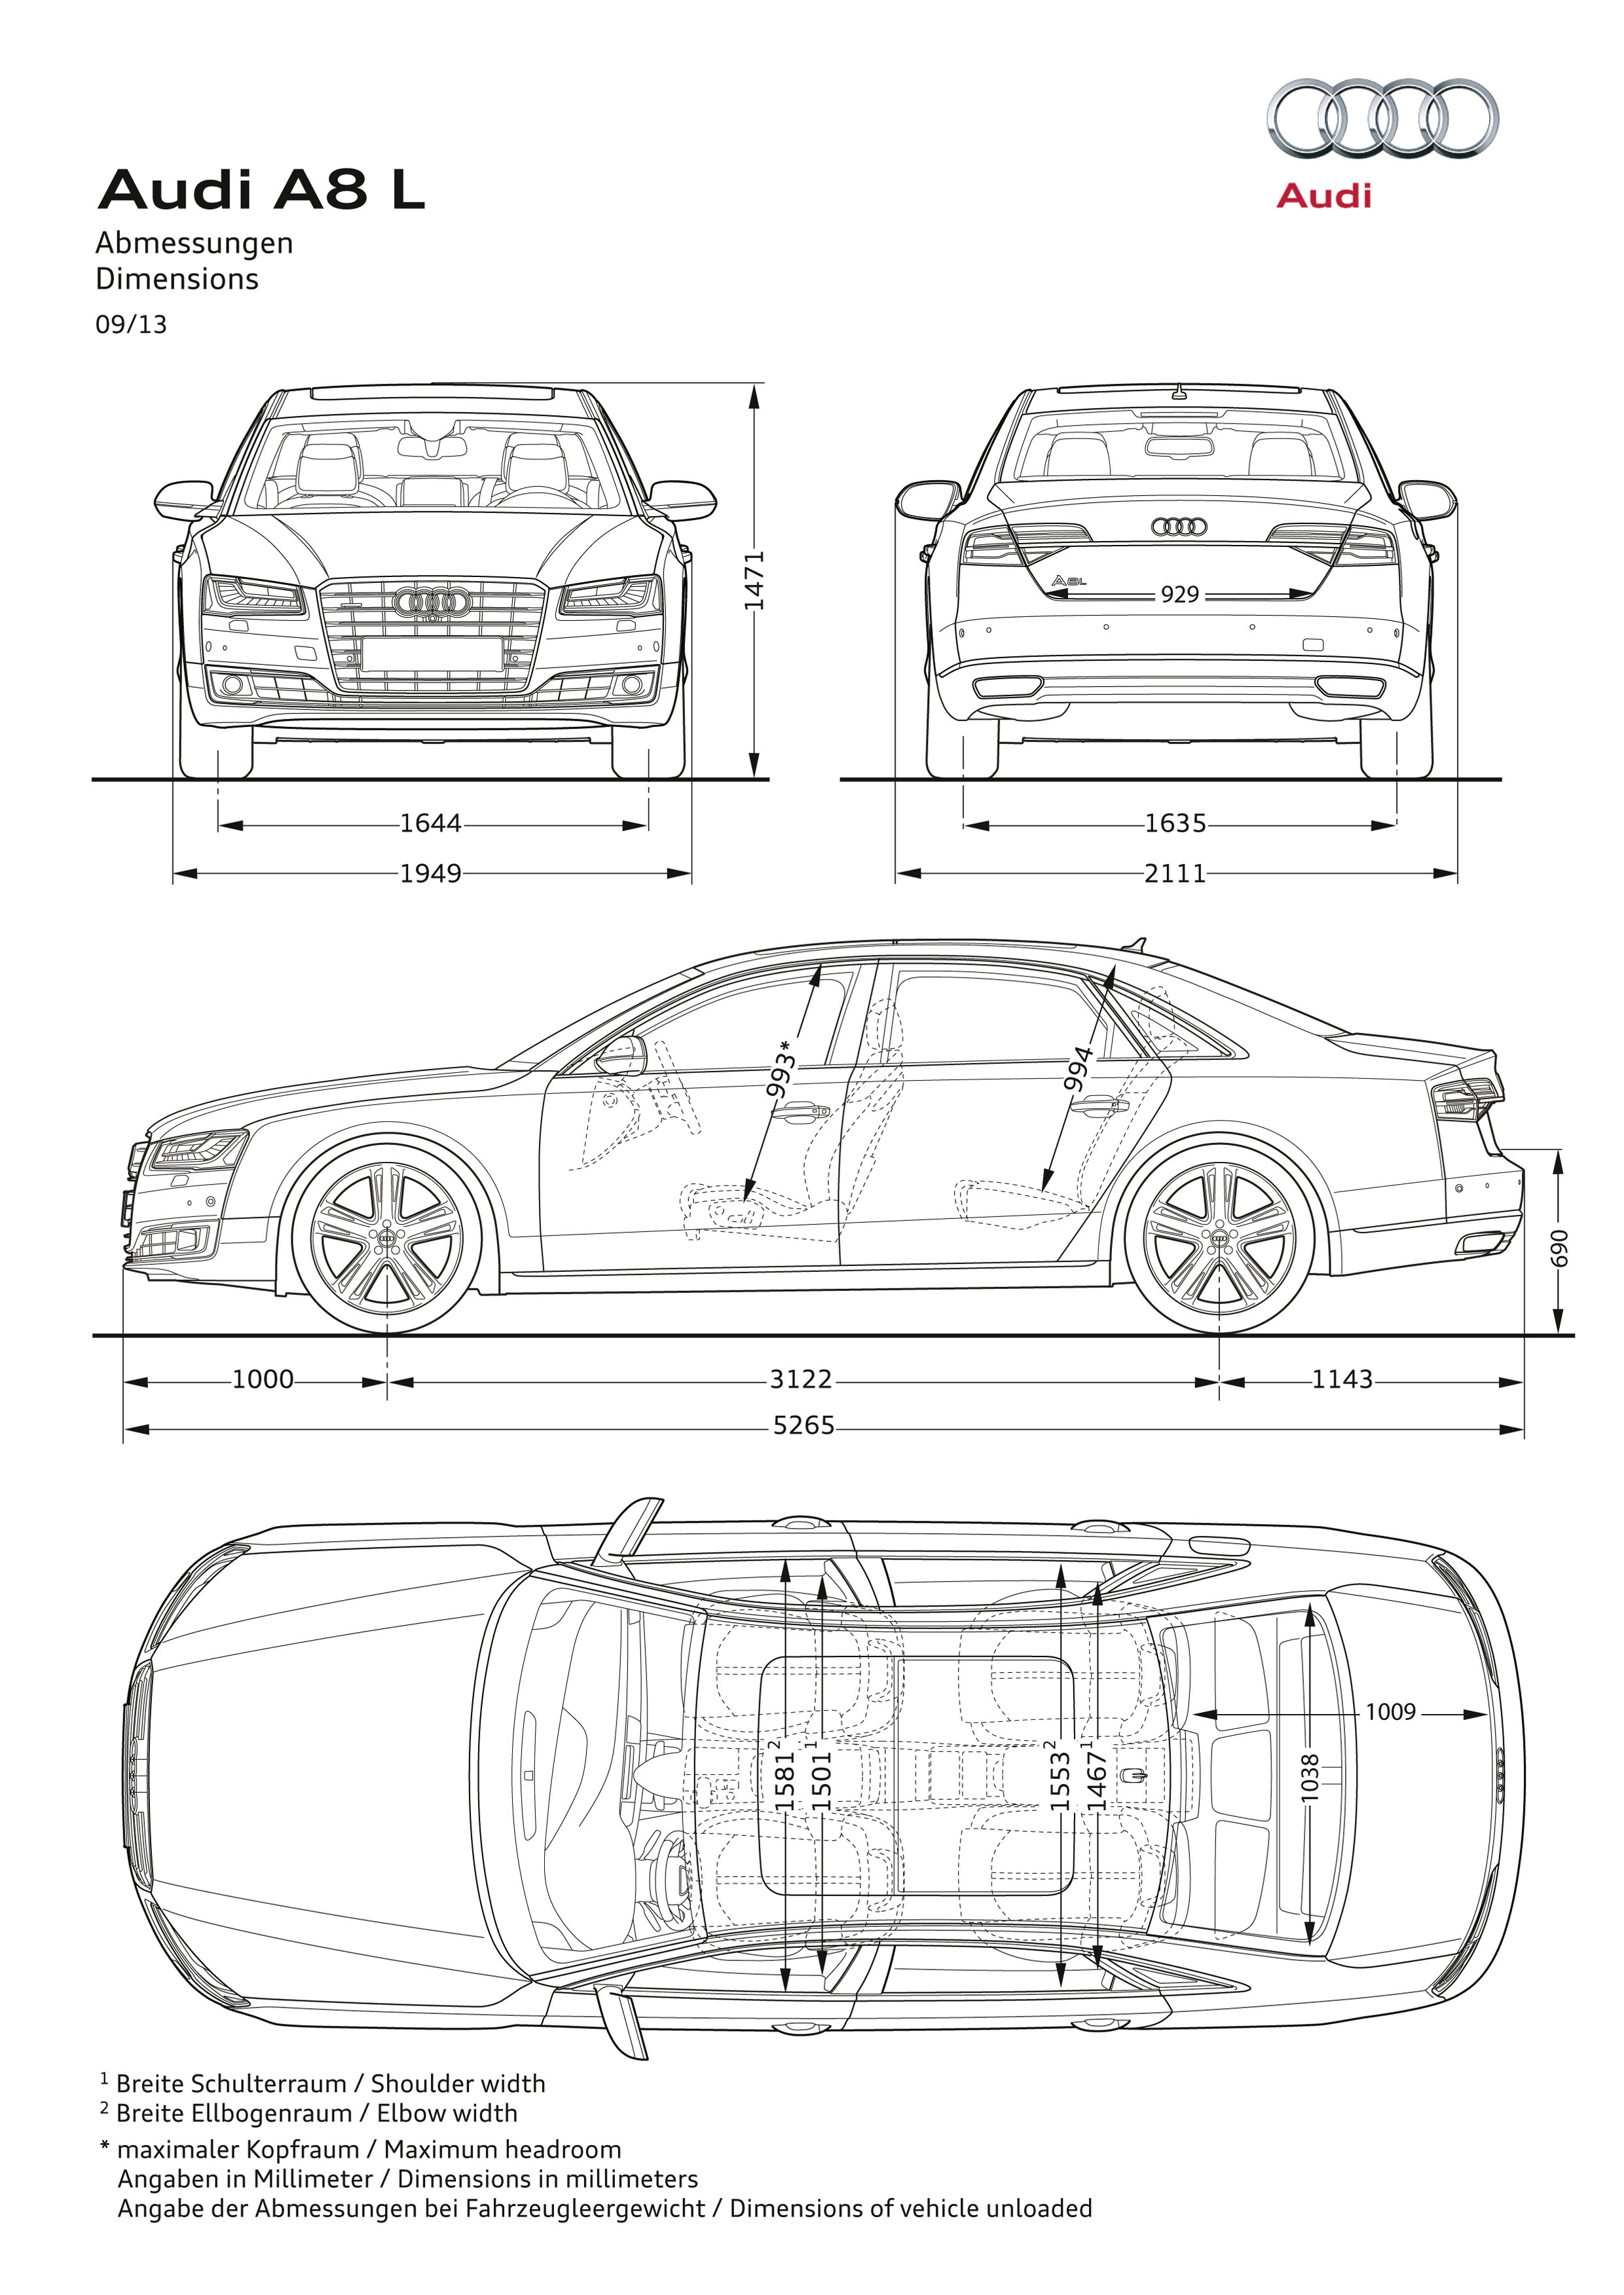 DIAGRAM] Diagram Audi W12 Engine Diagram FULL Version HD Quality Engine  Diagram - DIAGRAMUNLIKELIHOOD.NUITDEBOUTAIX.FR | Audi W1 2 Engine Diagram |  | diagramunlikelihood.nuitdeboutaix.fr